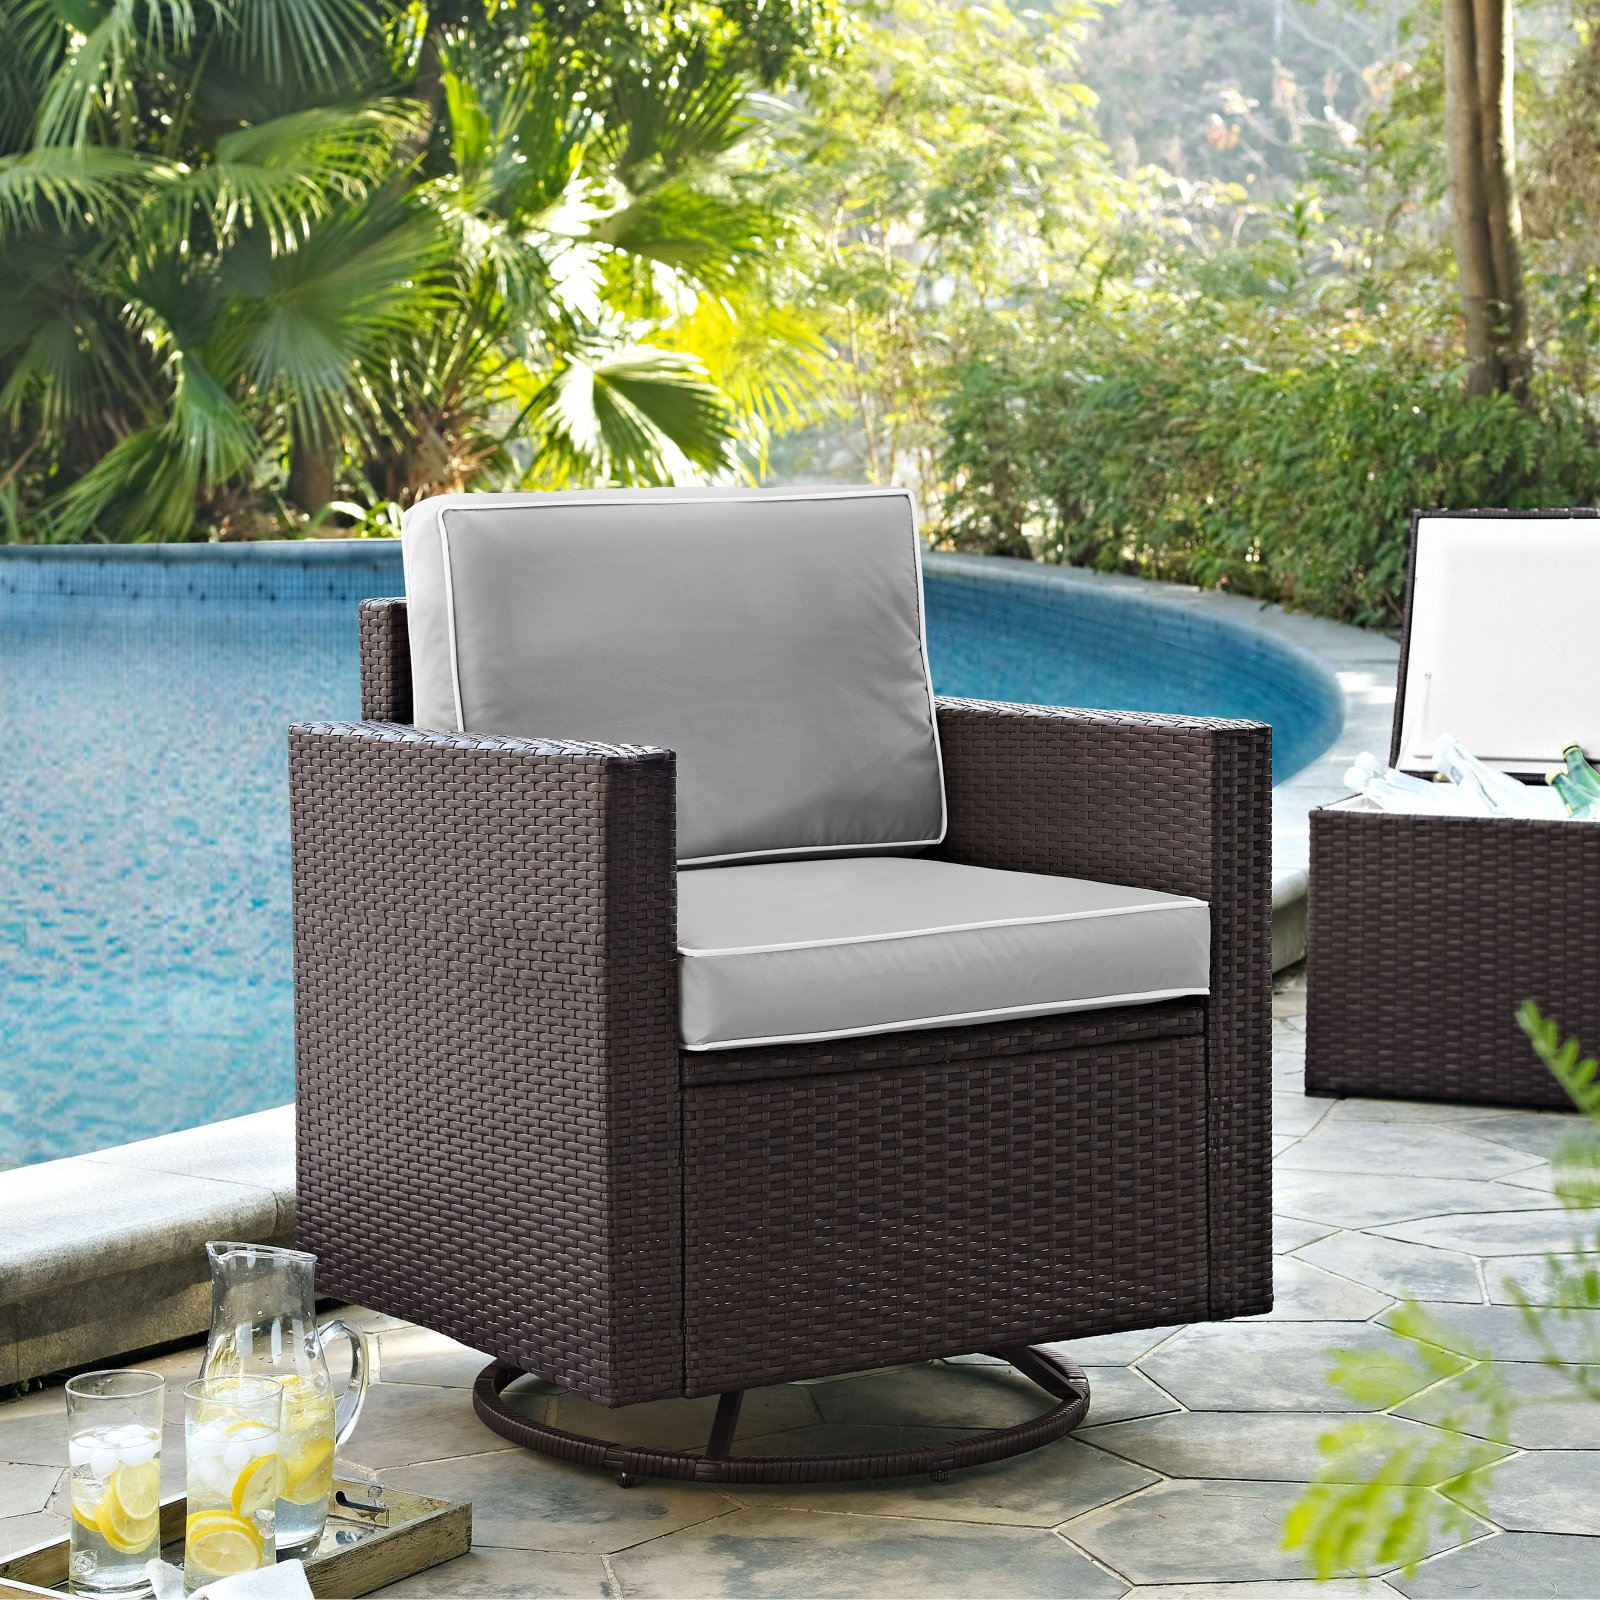 PALM HARBOR OUTDOOR WICKER SWIVEL ROCKER CHAIR WITH GREY CUSHIONS